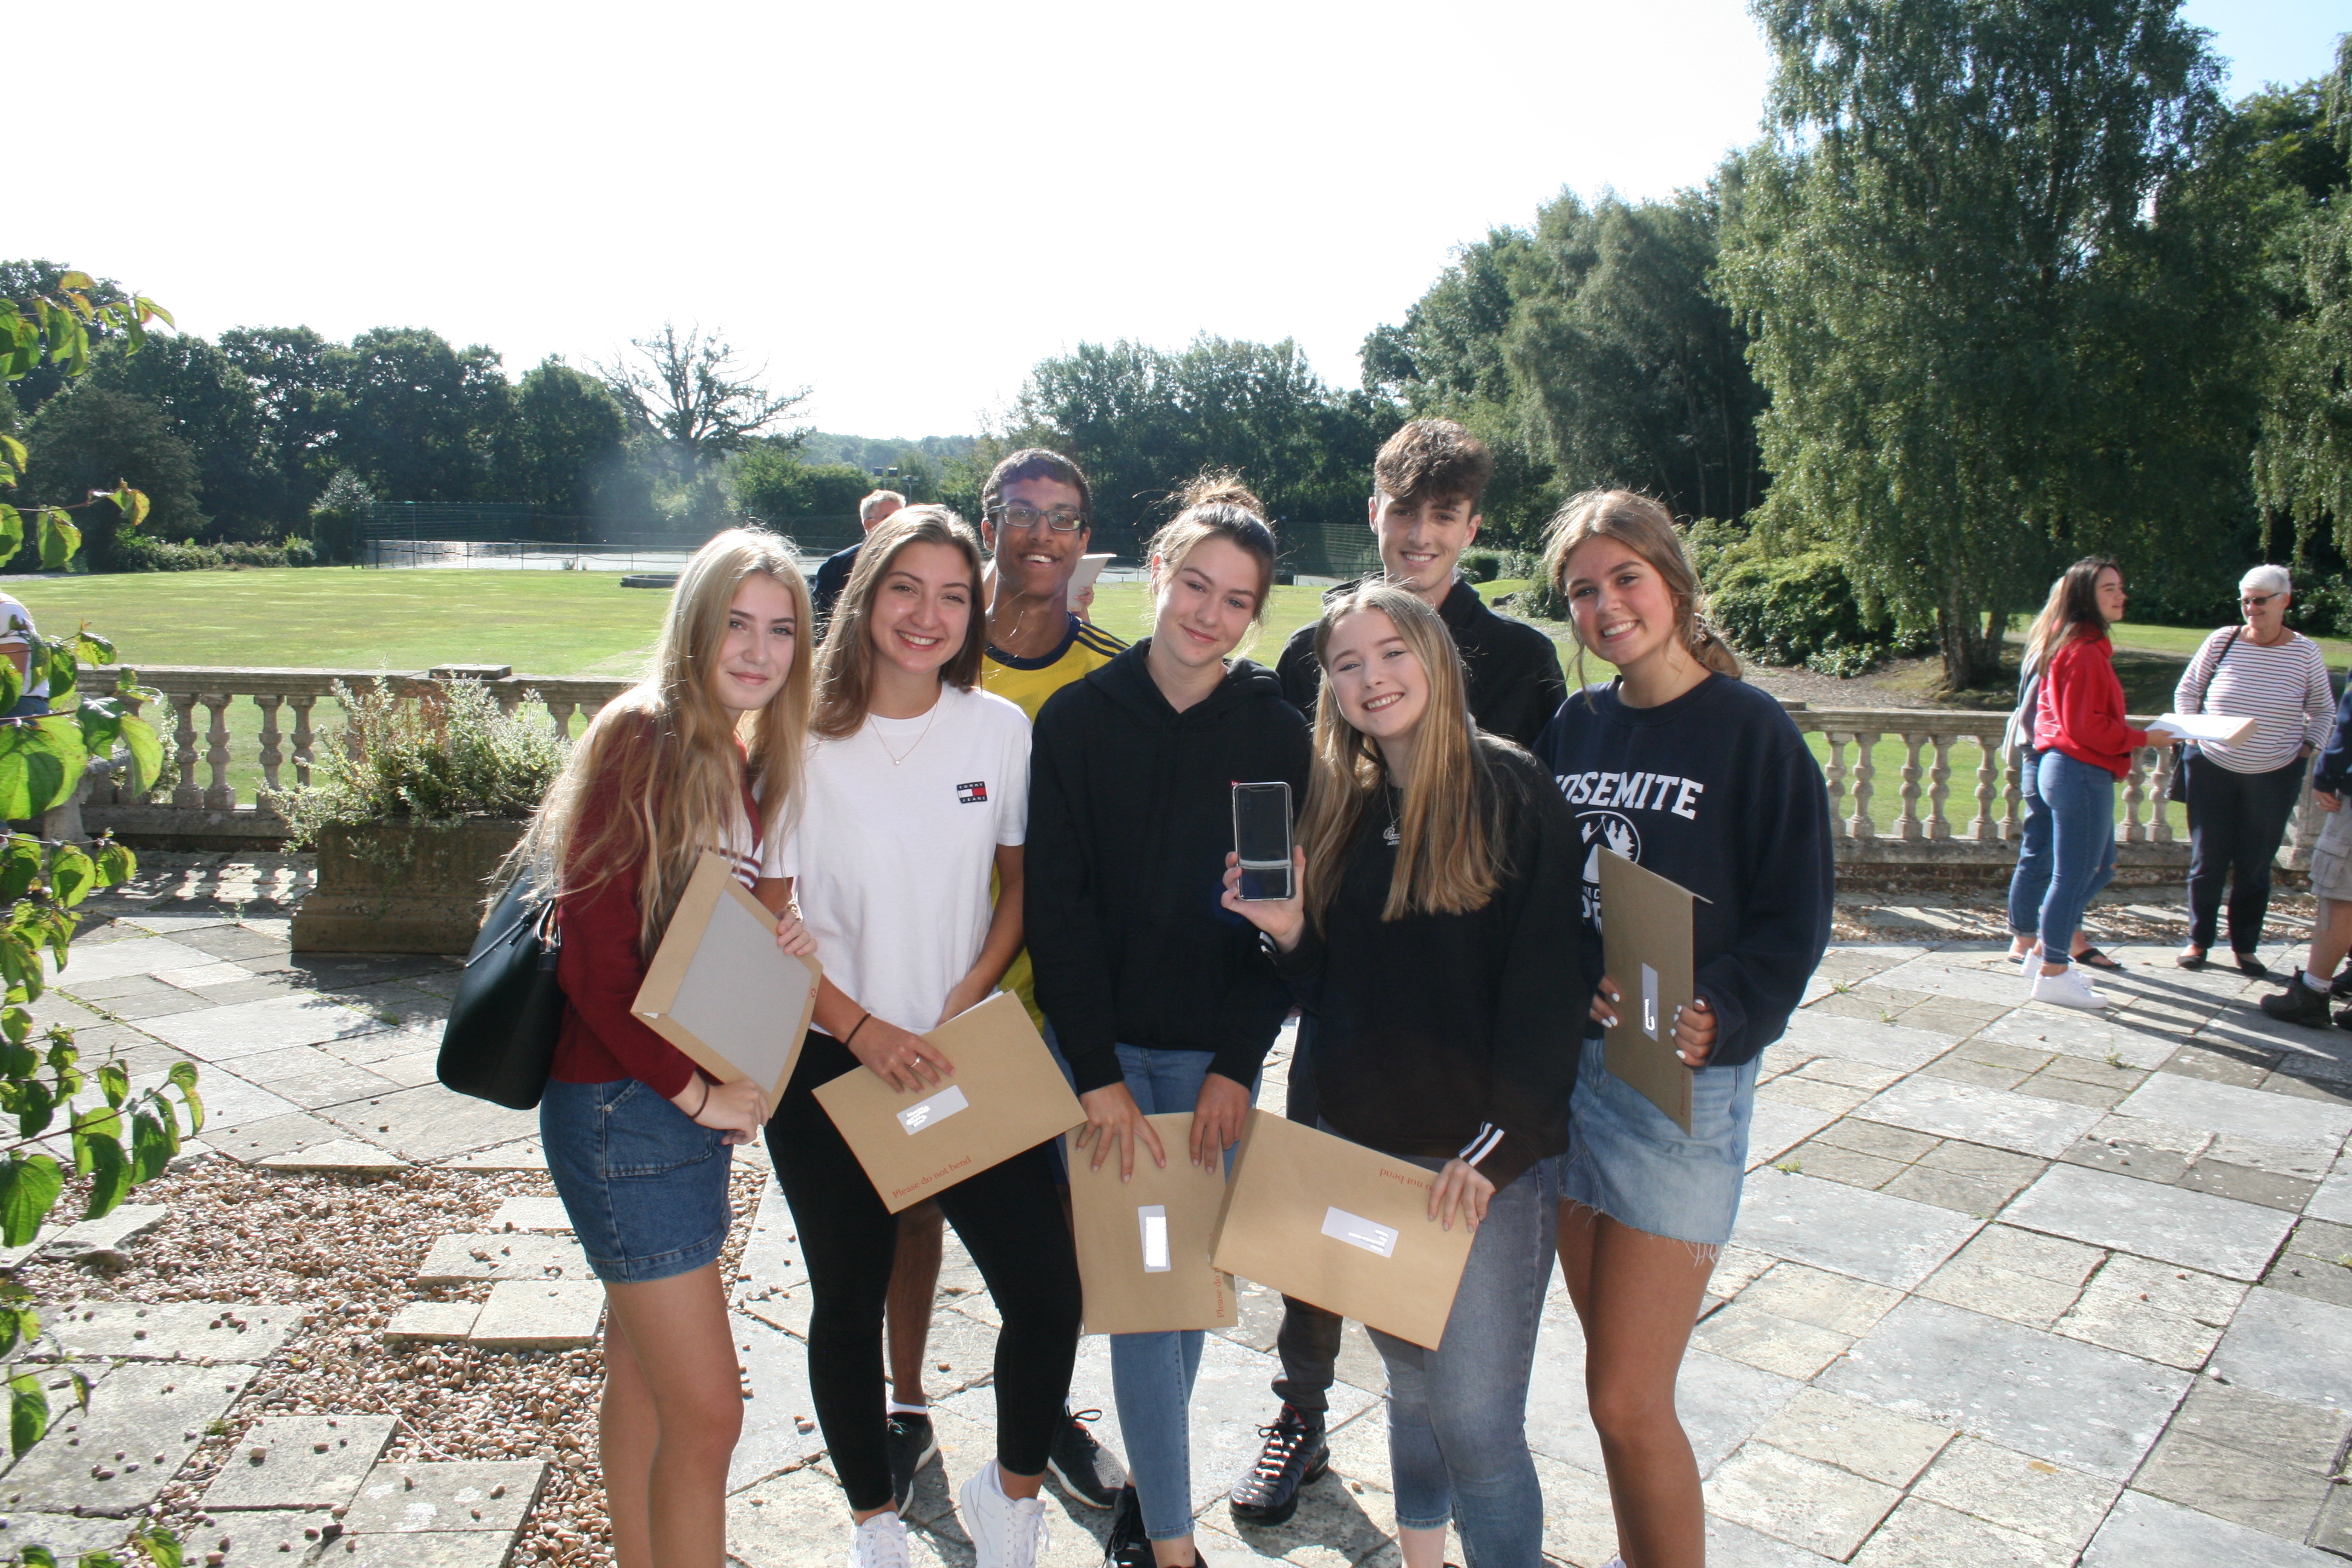 gcse results day 2020 - photo #9